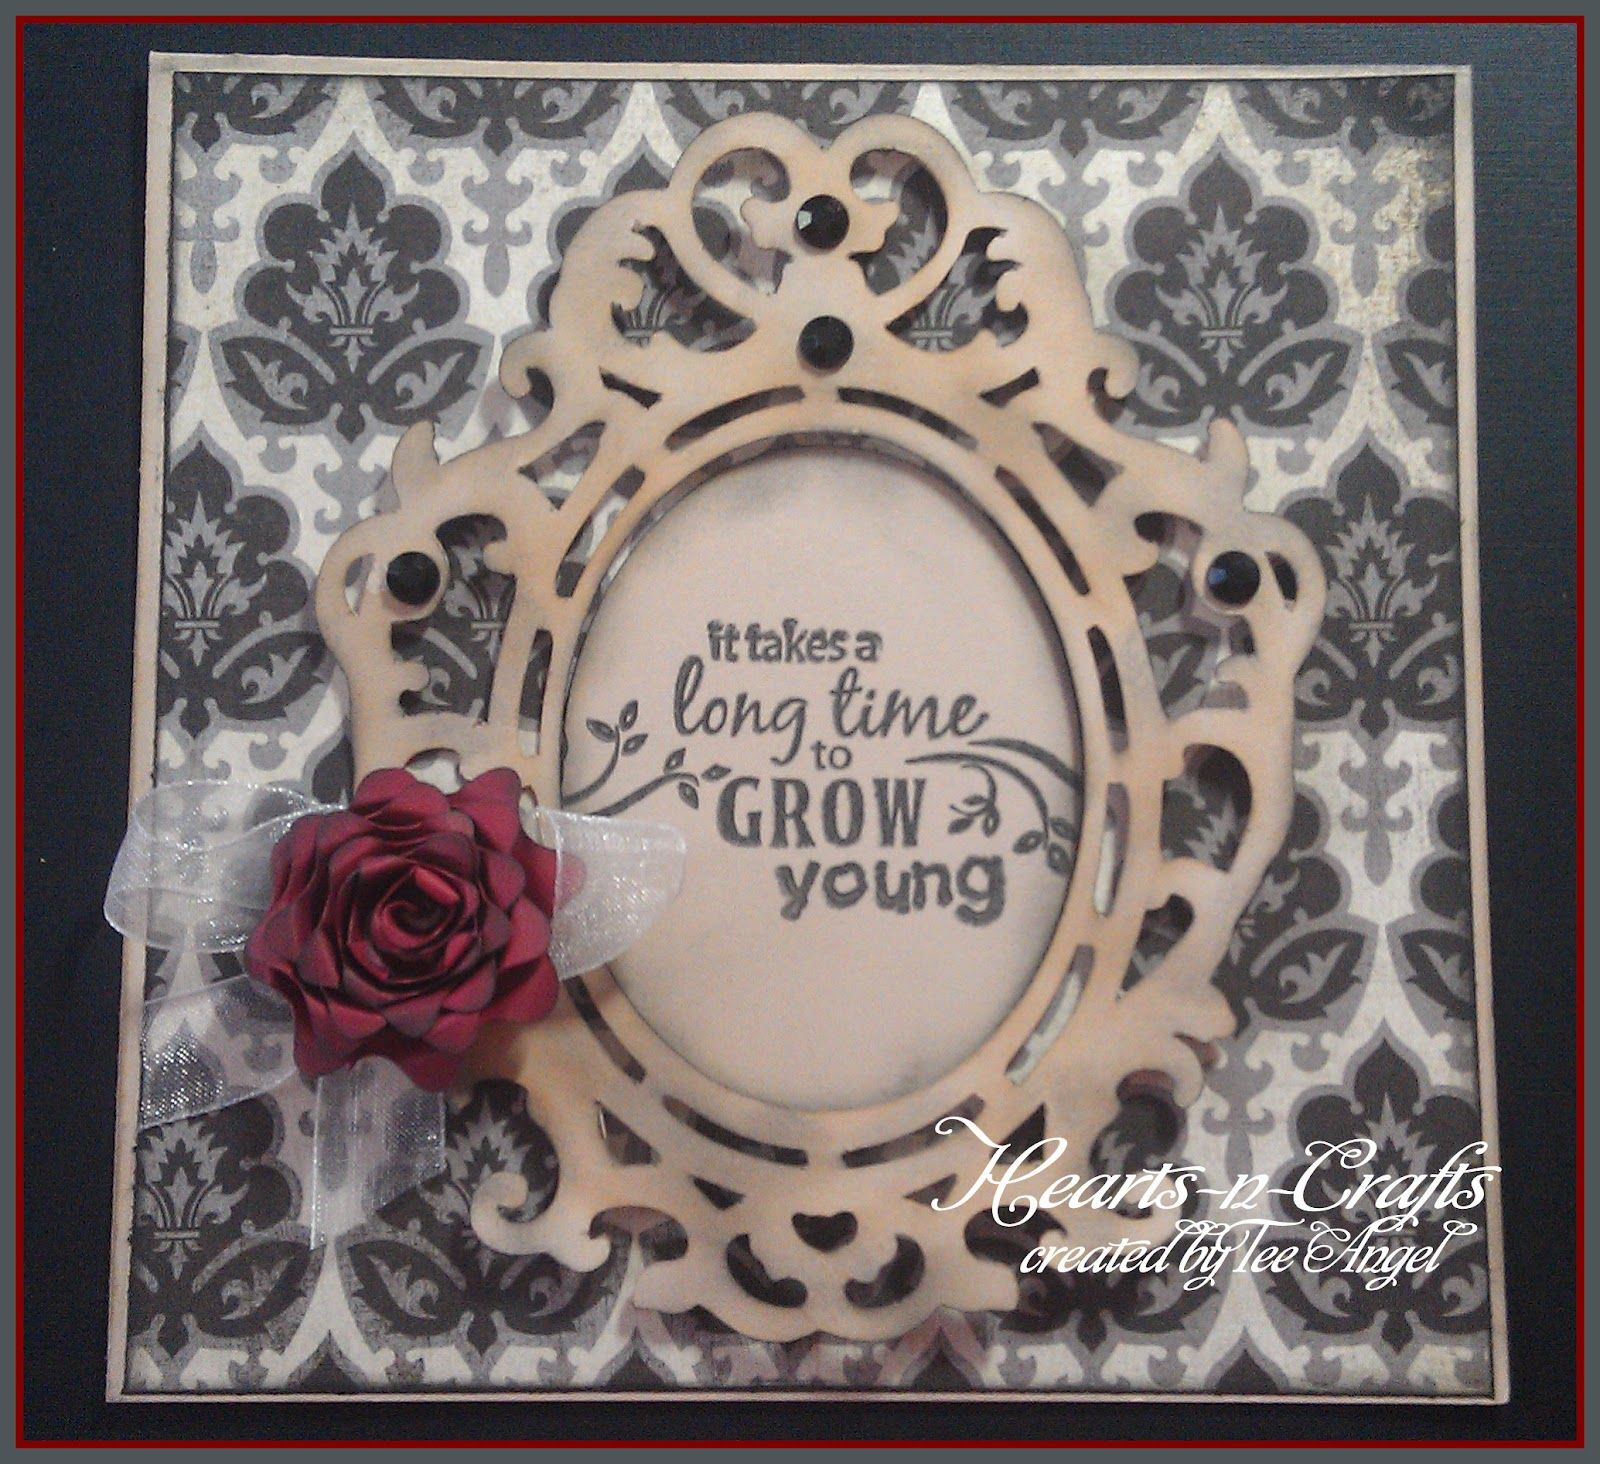 One scrap at a time fancy frames birthday card made with cricut one scrap at a time fancy frames birthday card made with cricut fancy frames and flower shoppe cartridges cards pinterest bookmarktalkfo Gallery